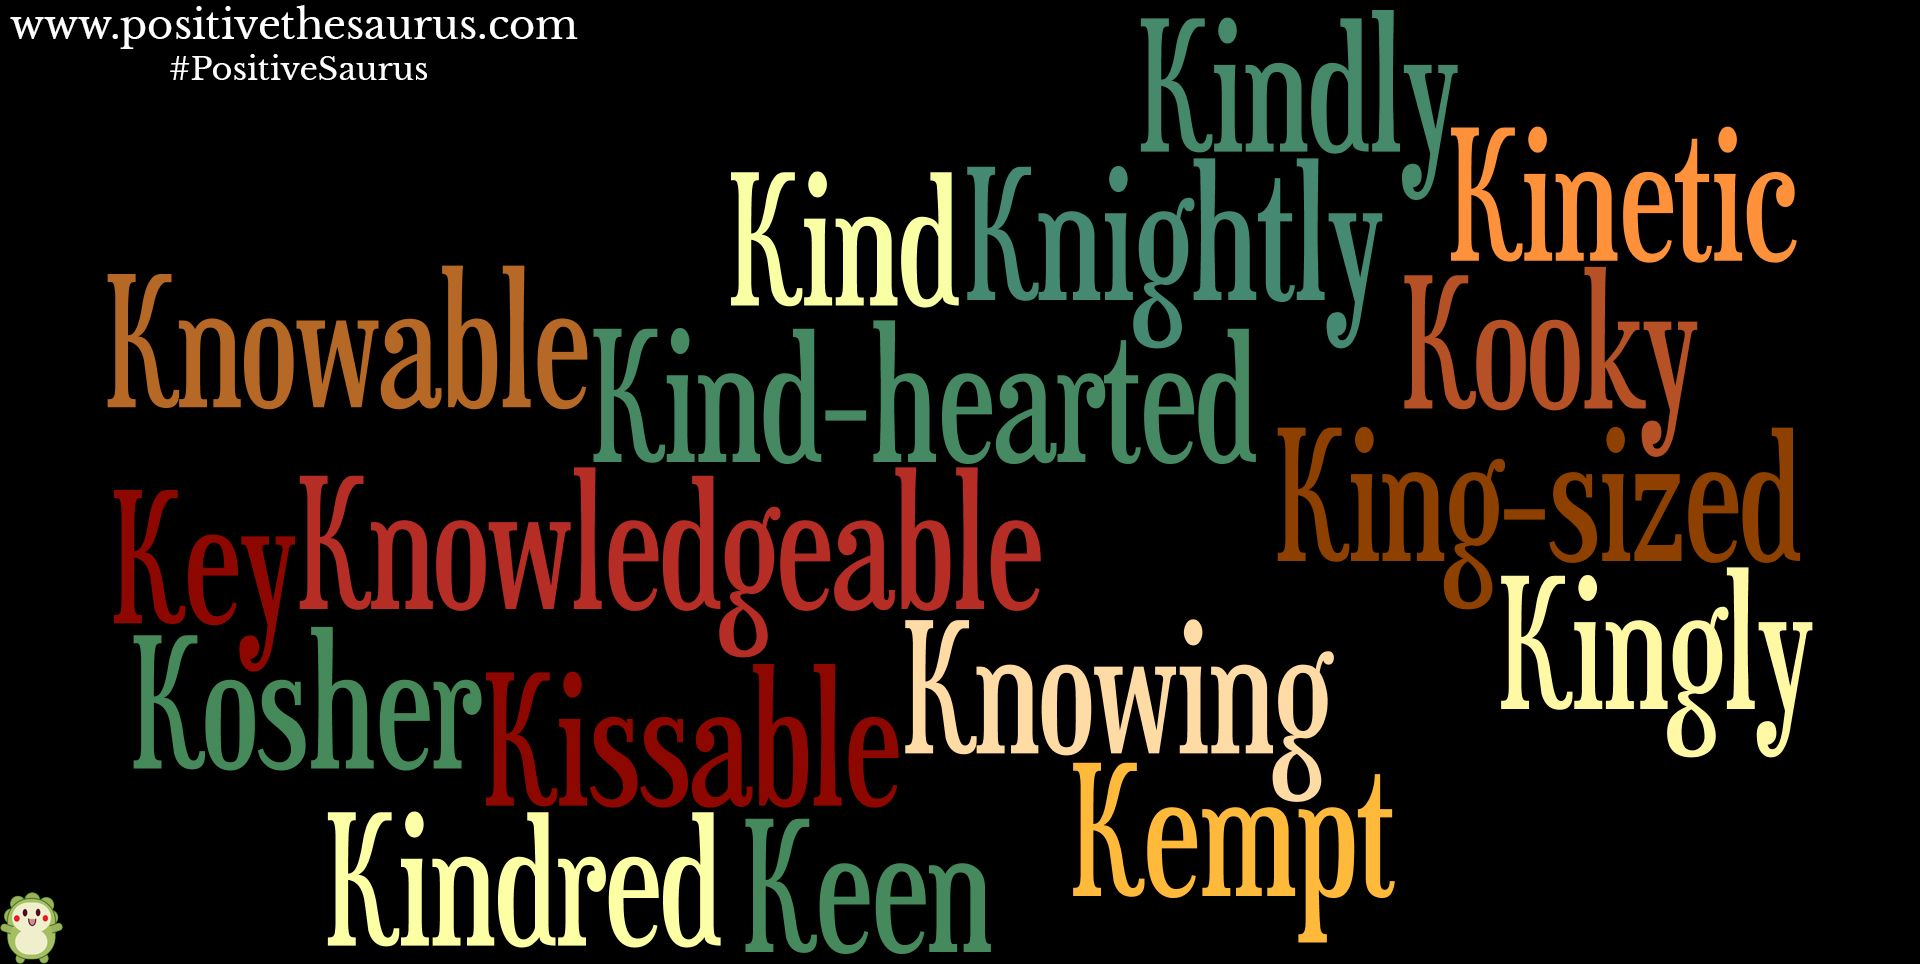 Positive adjectives starting with k. Have Kissable and kingly day